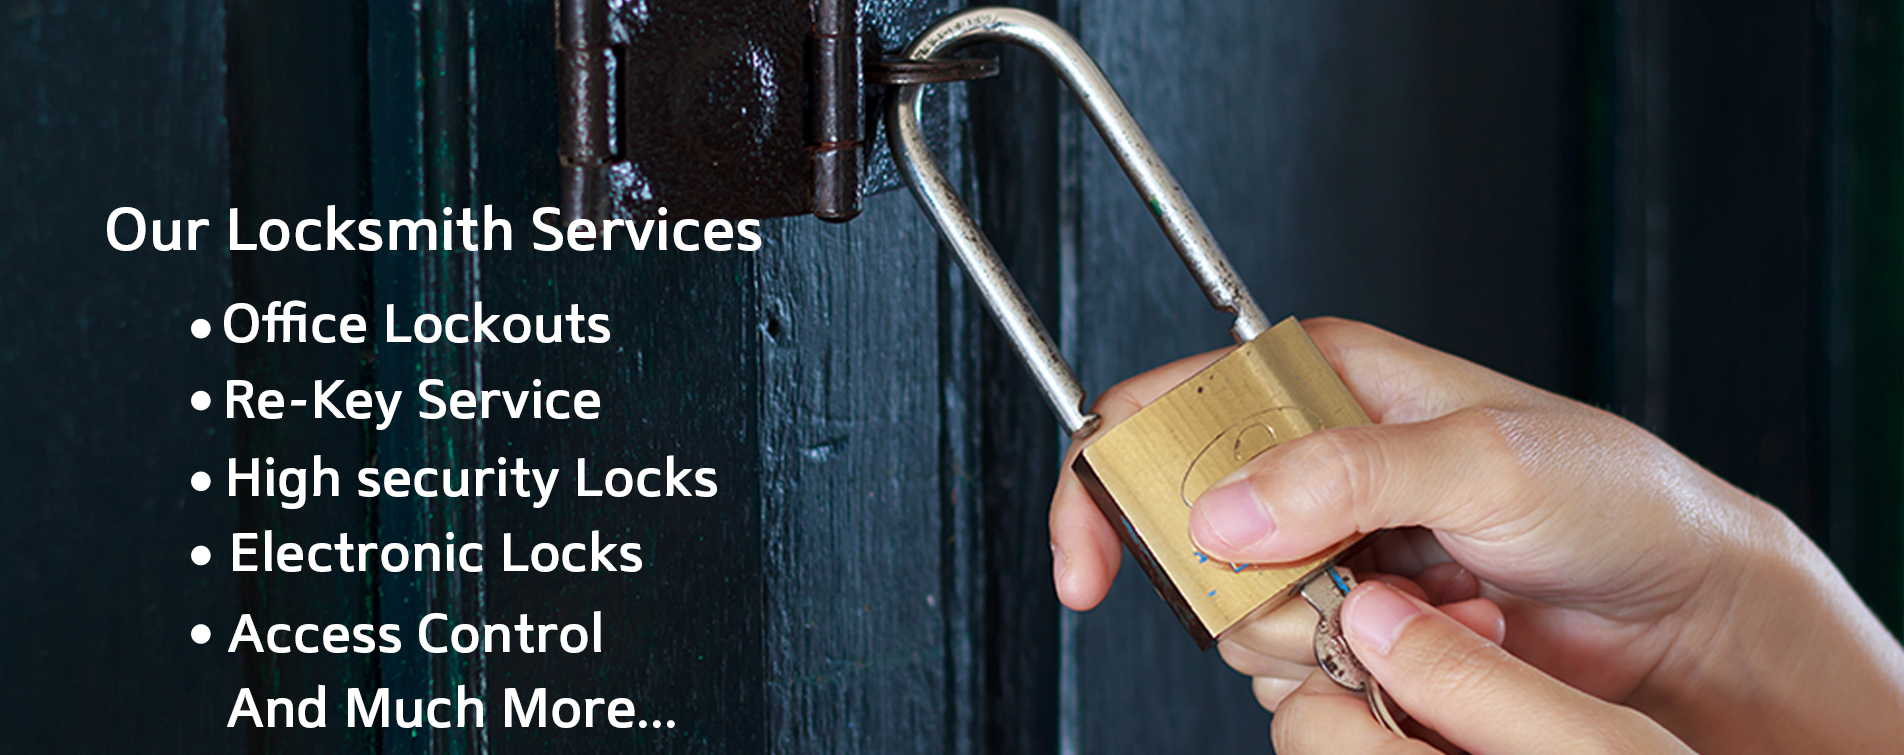 Harris Houston NC Locksmith Store, Charlotte, NC 704-755-4677